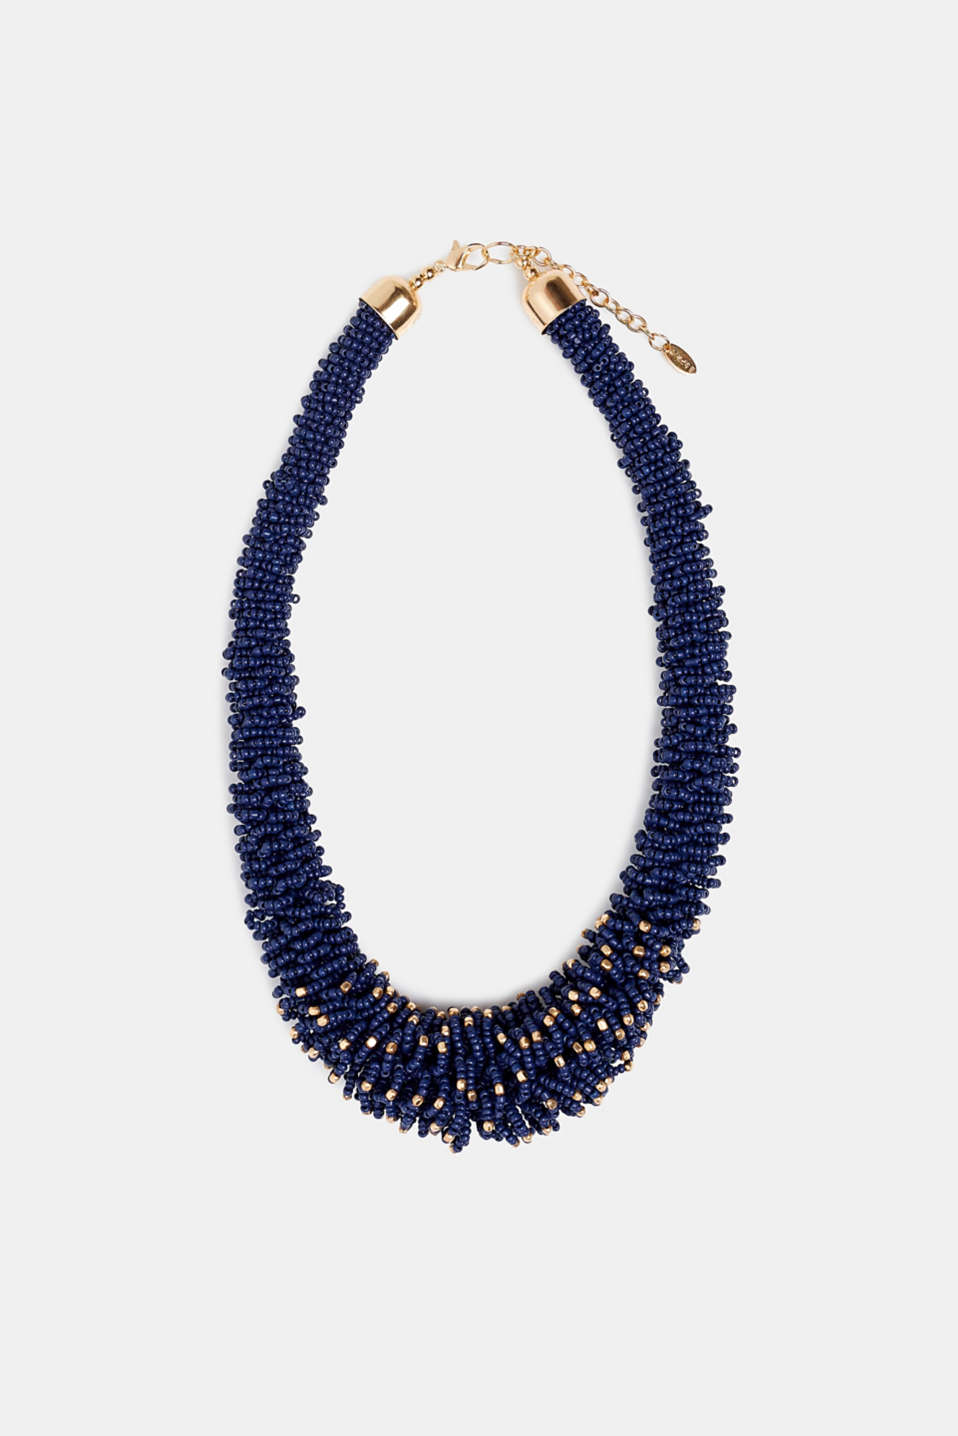 Esprit - Statement necklace with beads